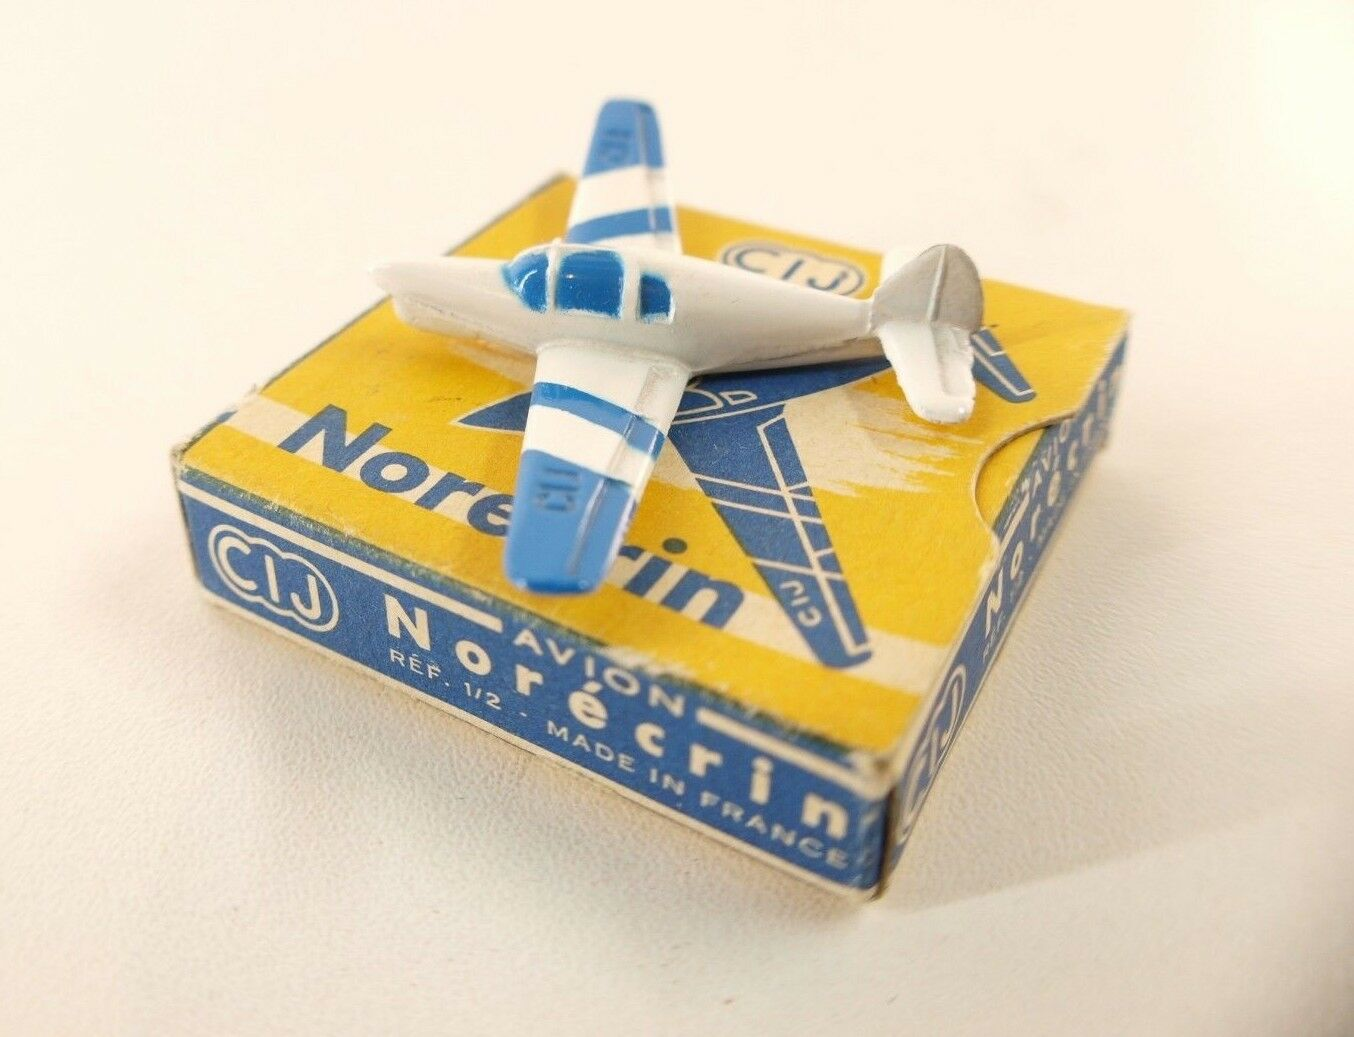 Cij F nº 1.2 plane norecrin canned nine rare